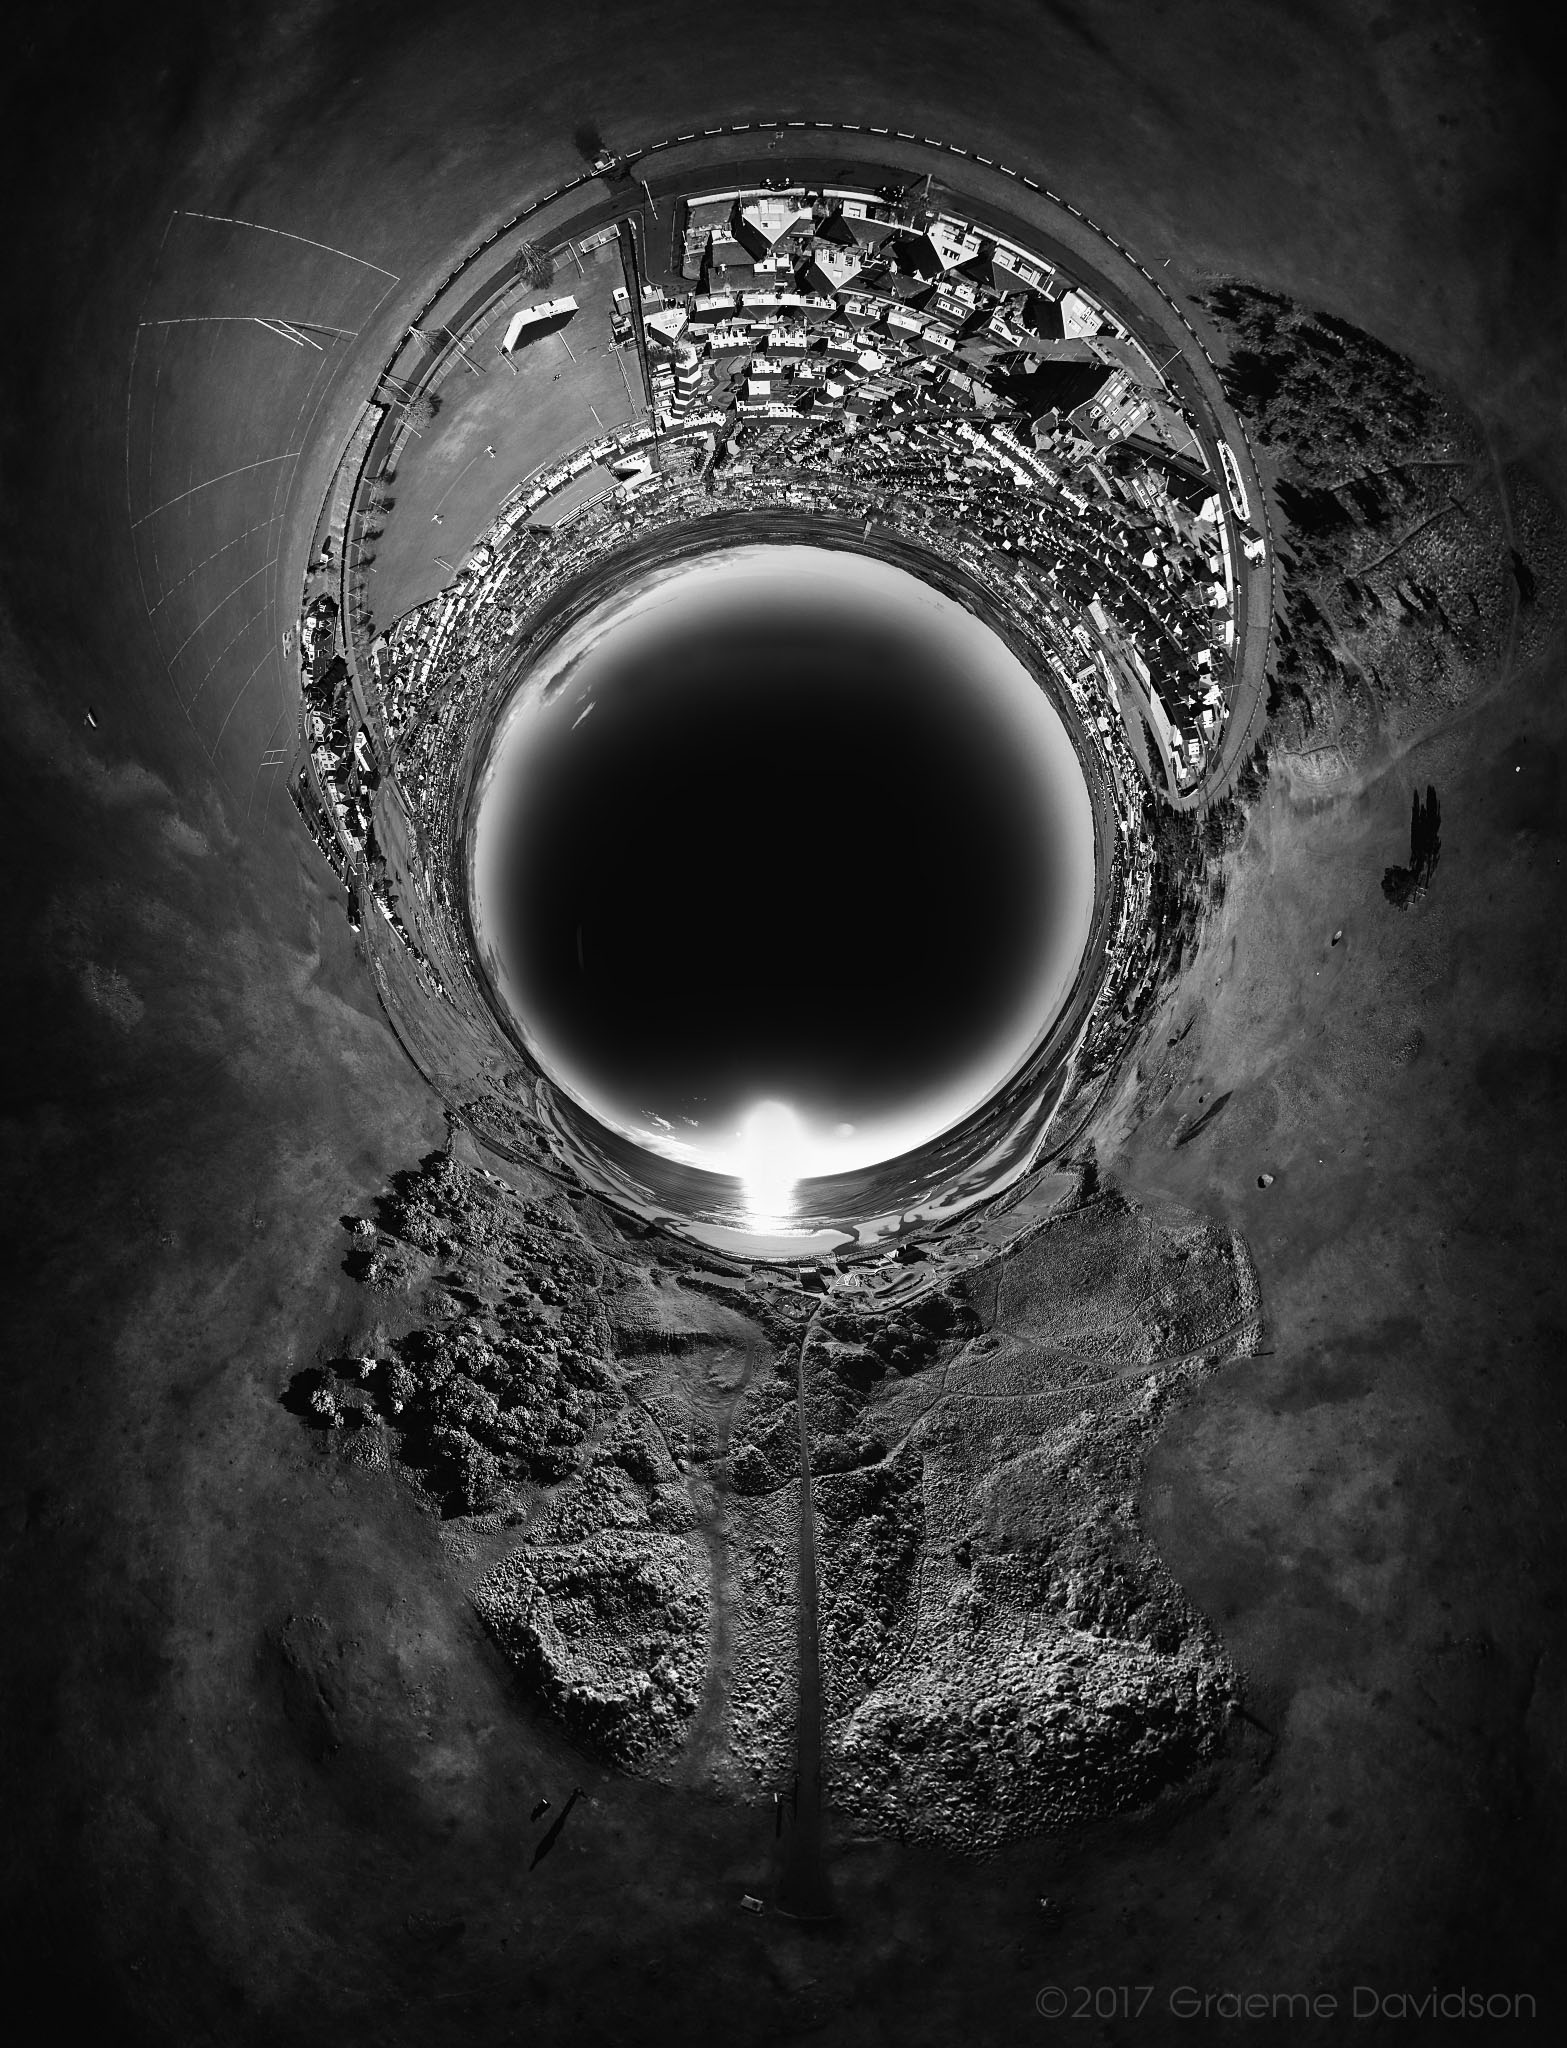 Inverted stereographic BW view